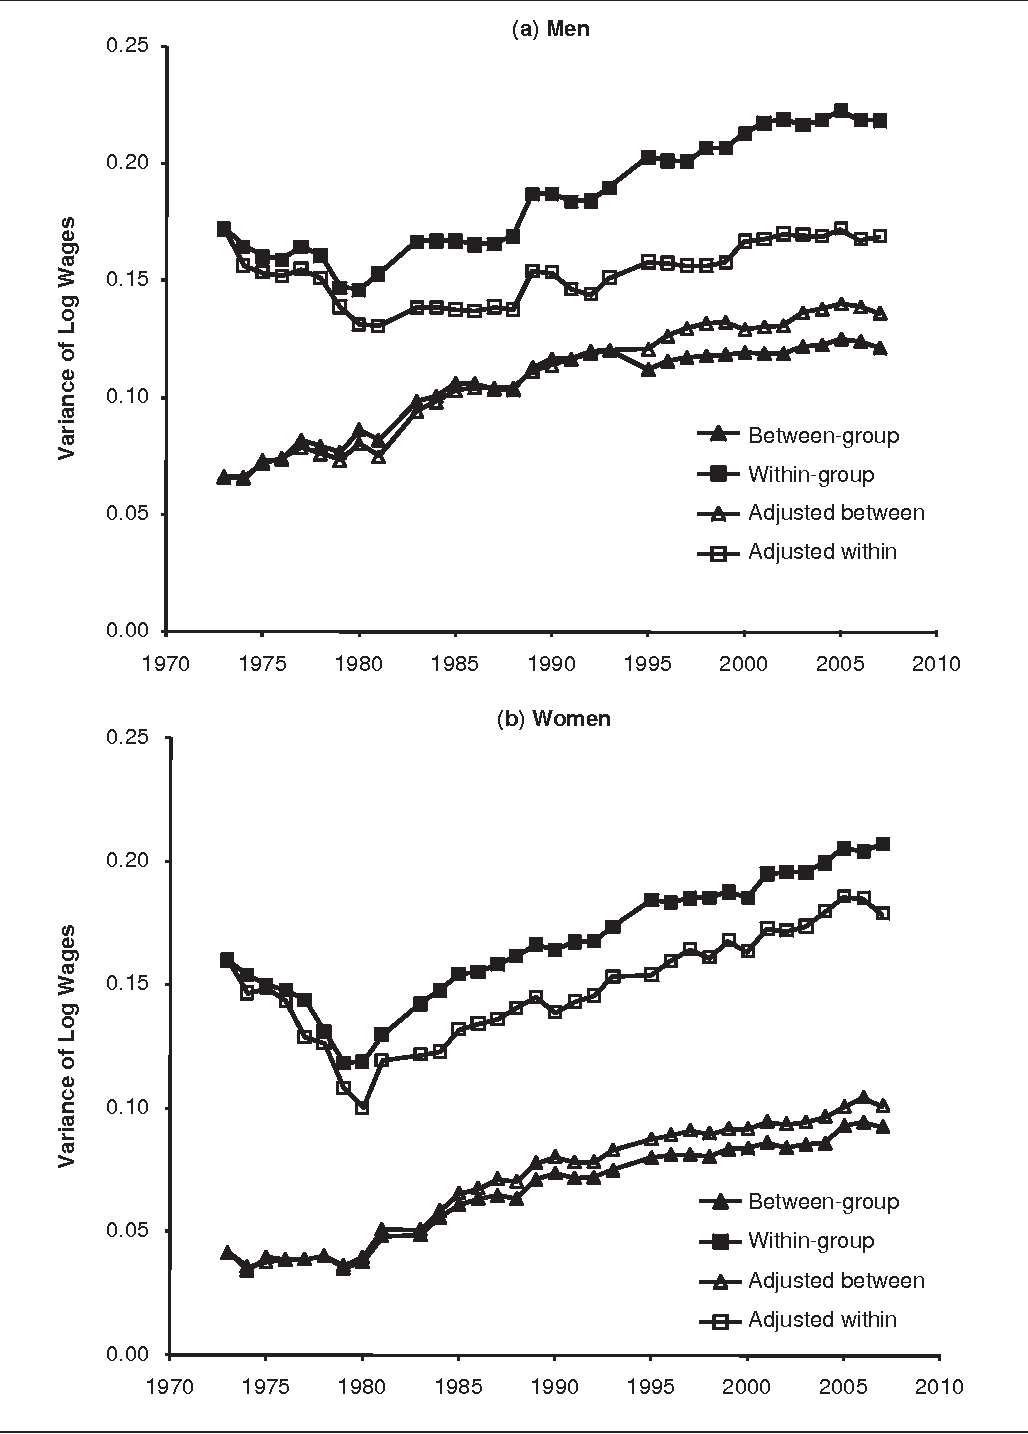 Figure 7. Observed and Adjusted Within- and Between-Group Variances of Log Hourly Wages, Full-Time, Private Sector Men and Women, 1973 to 2007; Adjusted Variances Fixed at the 1973 Level: Union Membership, Industry-Region Unionization Rates, and Industry-